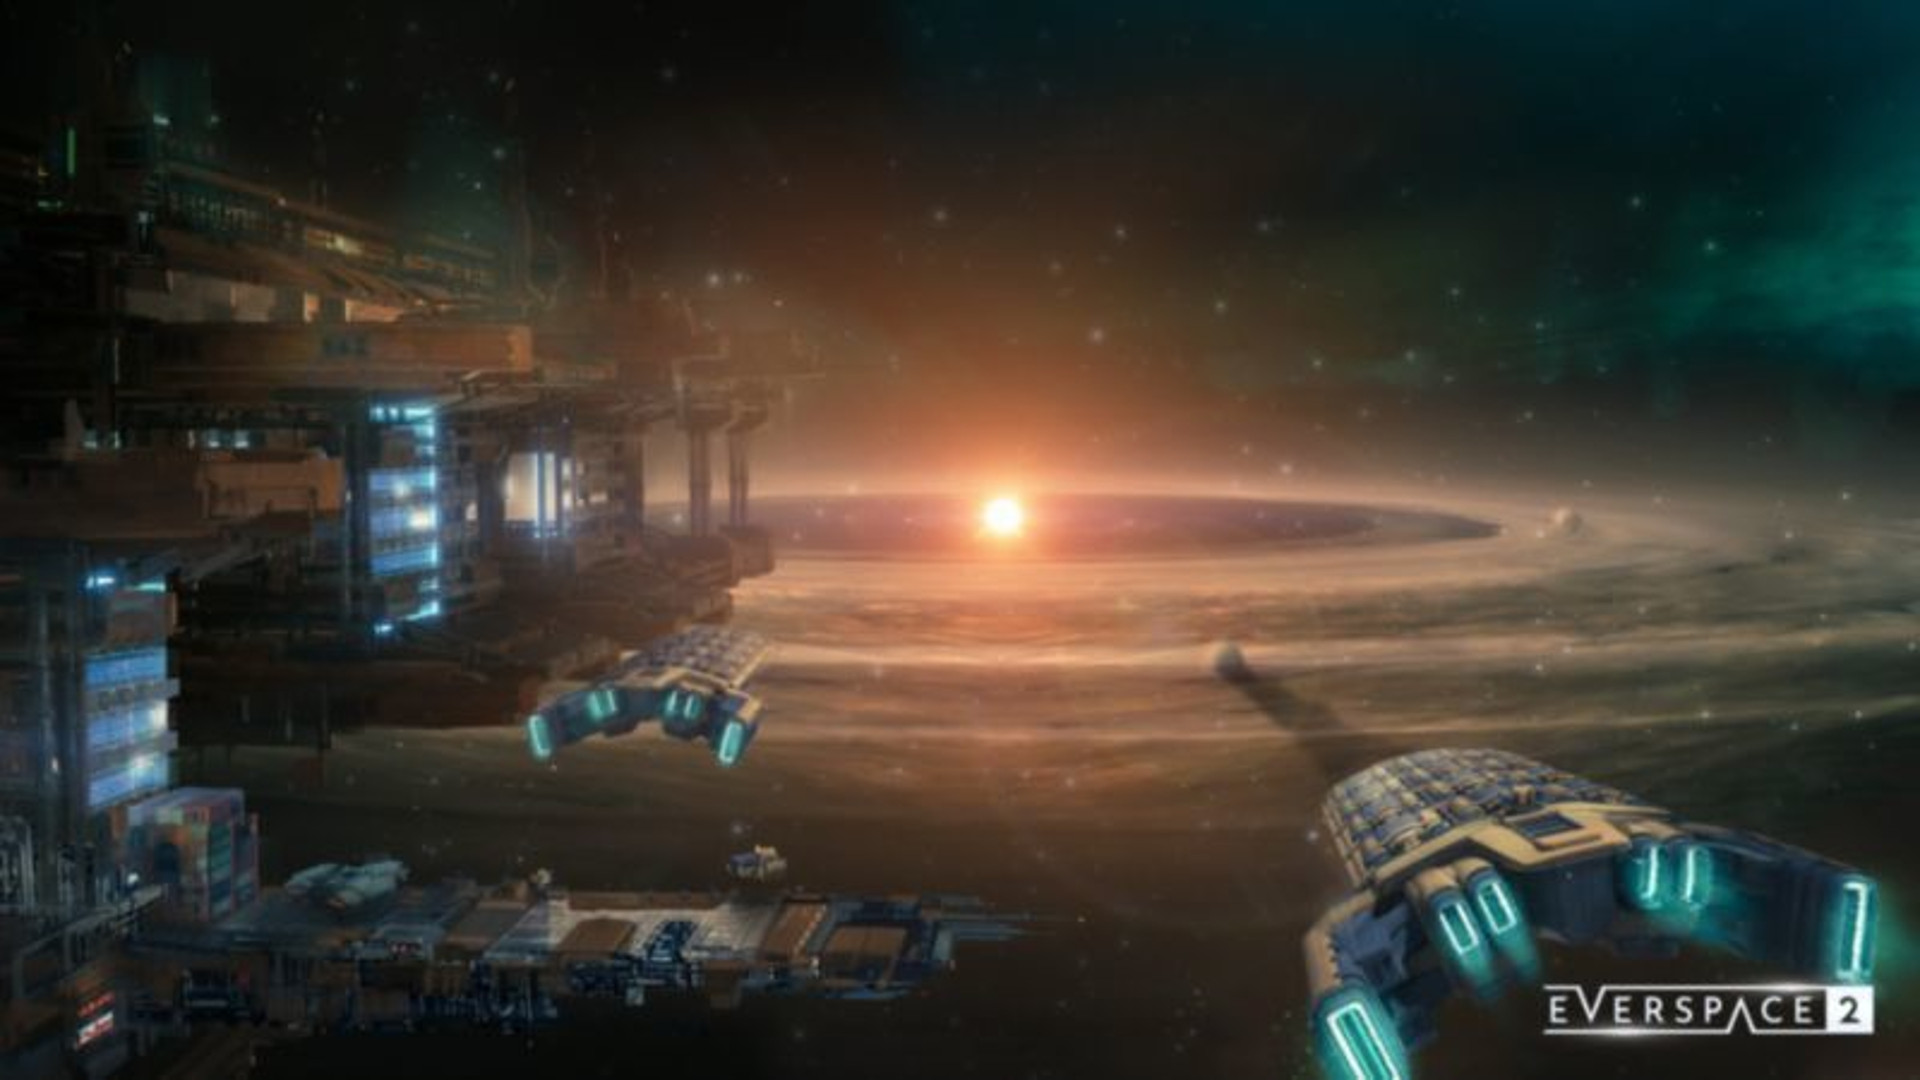 Everspace 2 roadmap promises new systems and fast travel, next update in April